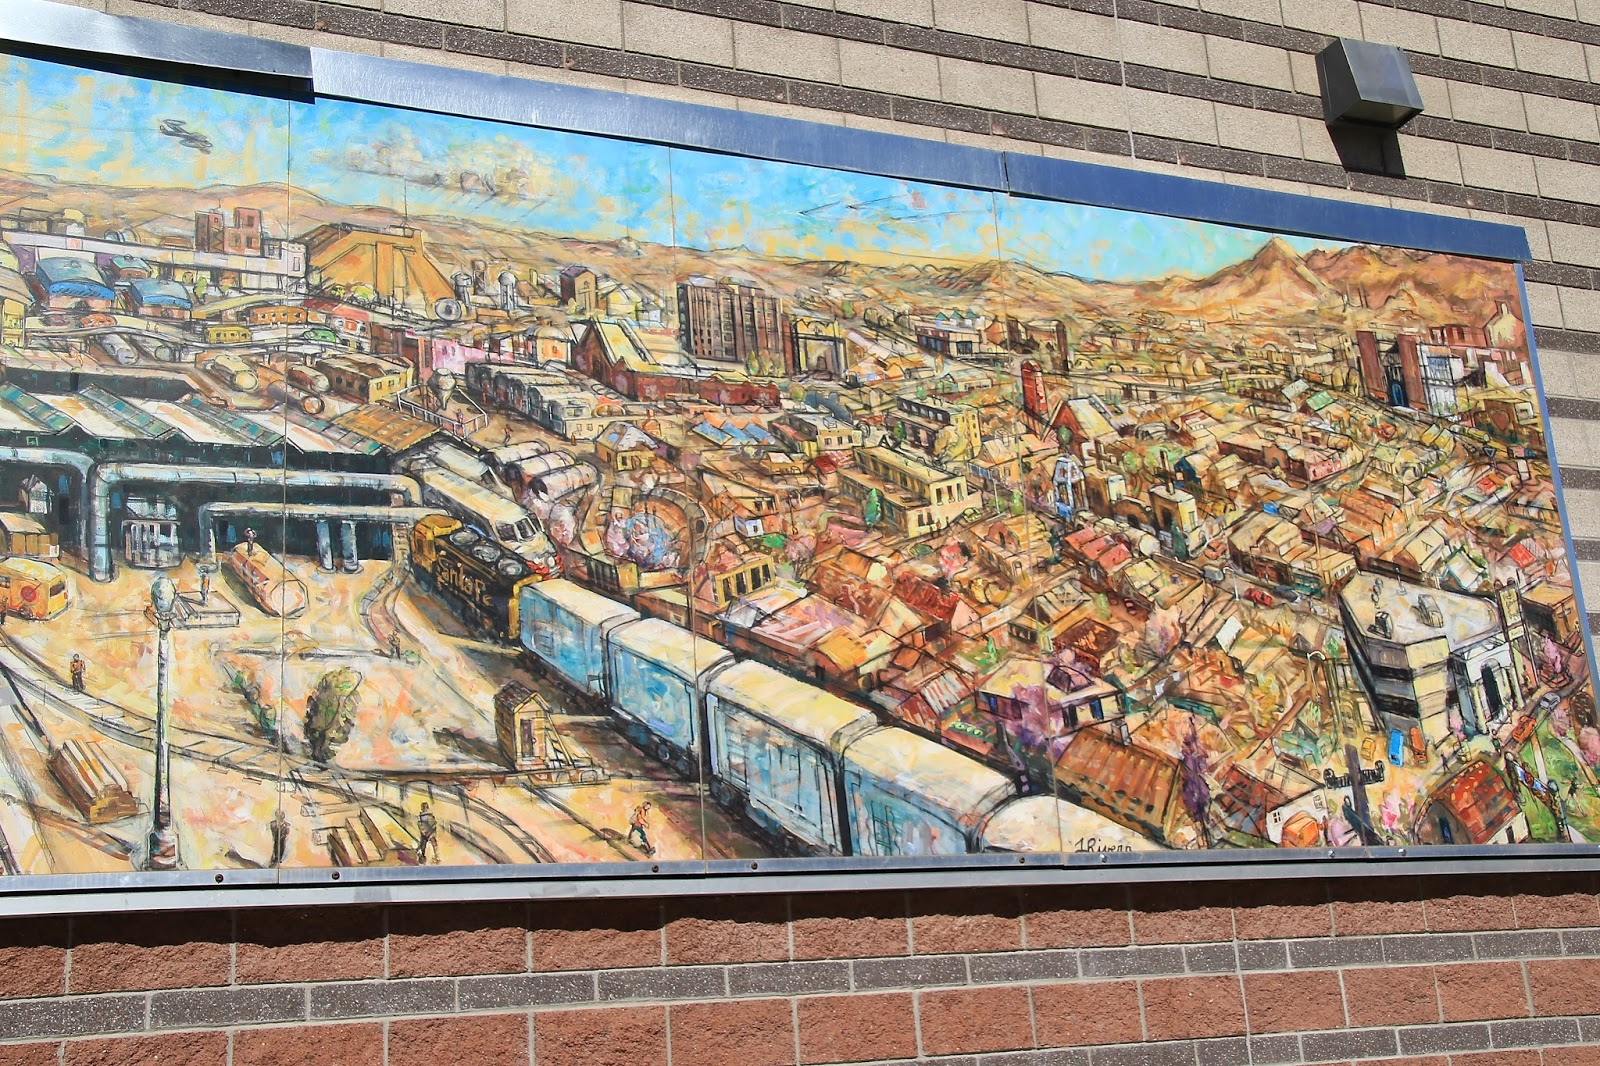 Travels with Twinkles: Albuquerque, Route 66 and Day of the Dead